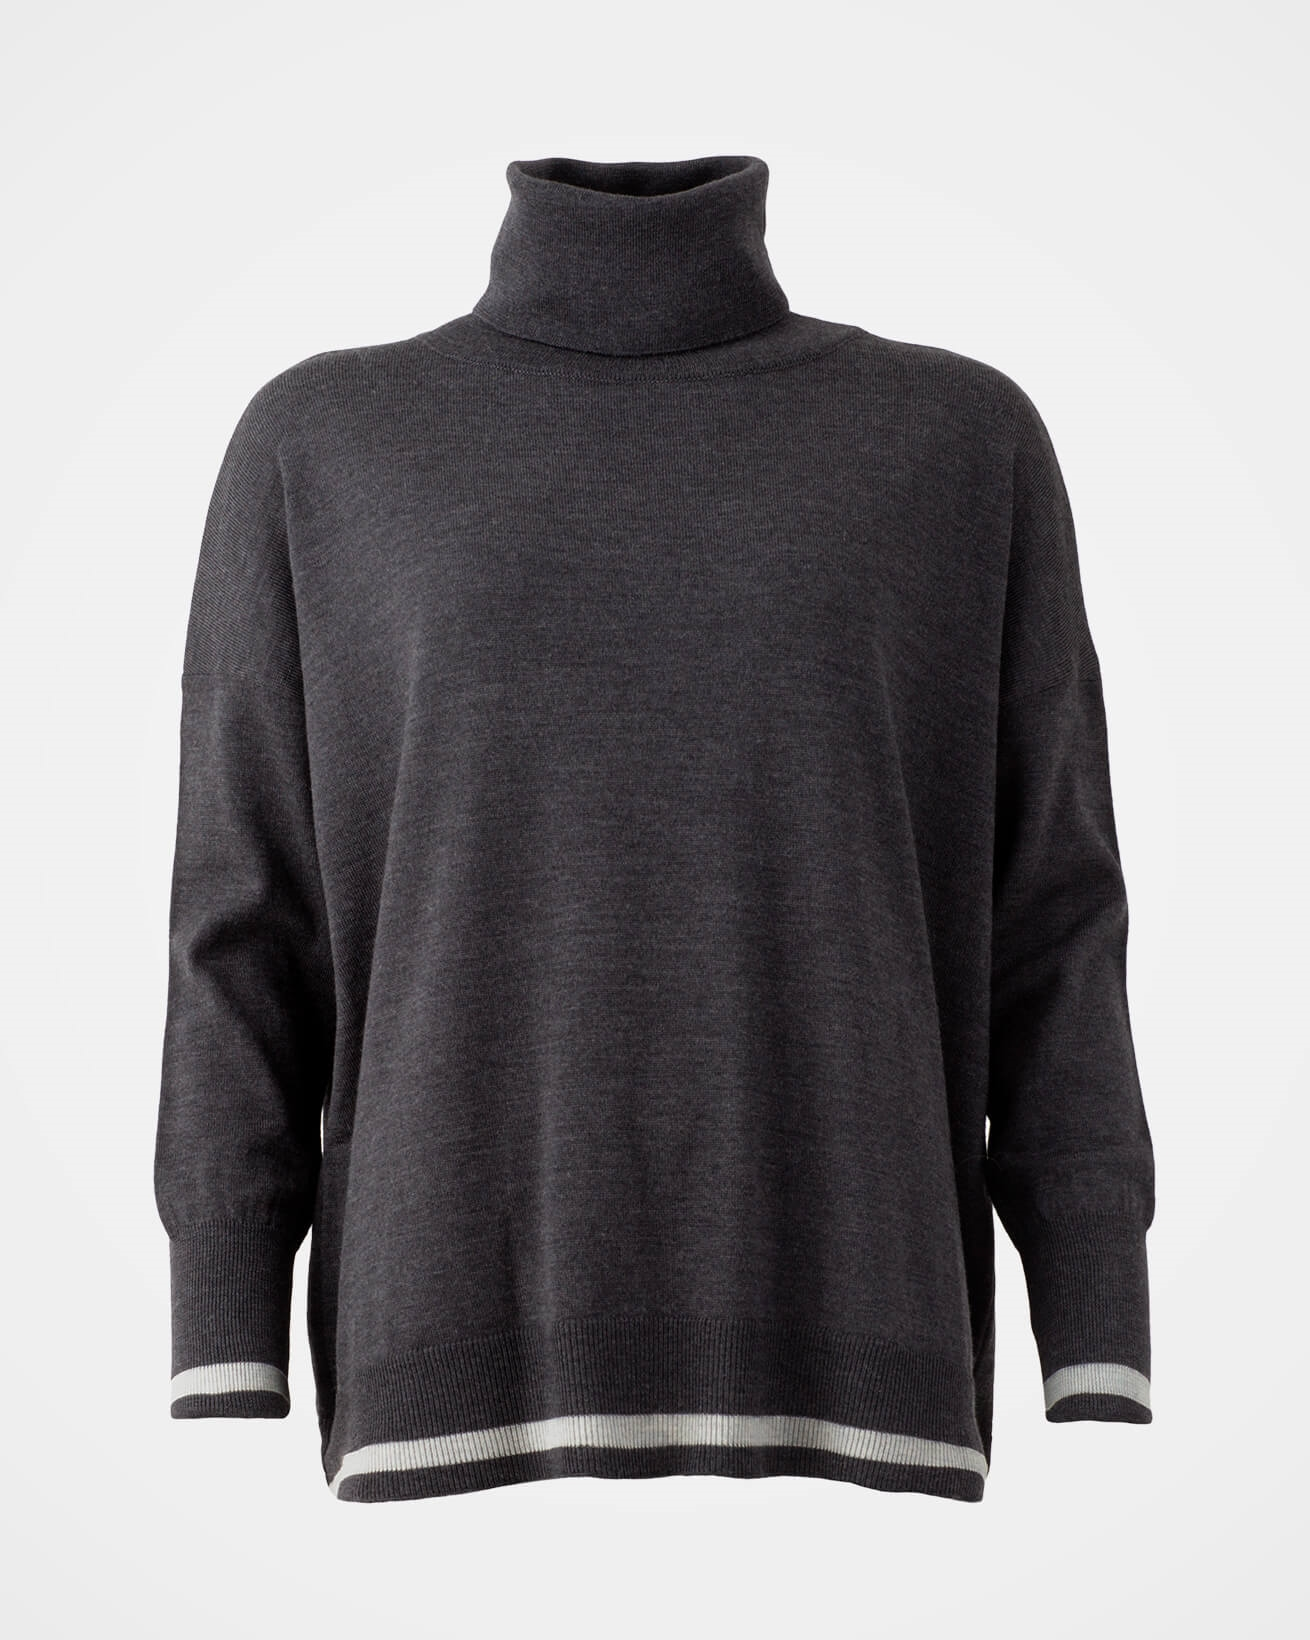 7401_slouchy-merino-rollneck_charcoal-tipped_front_web.jpg